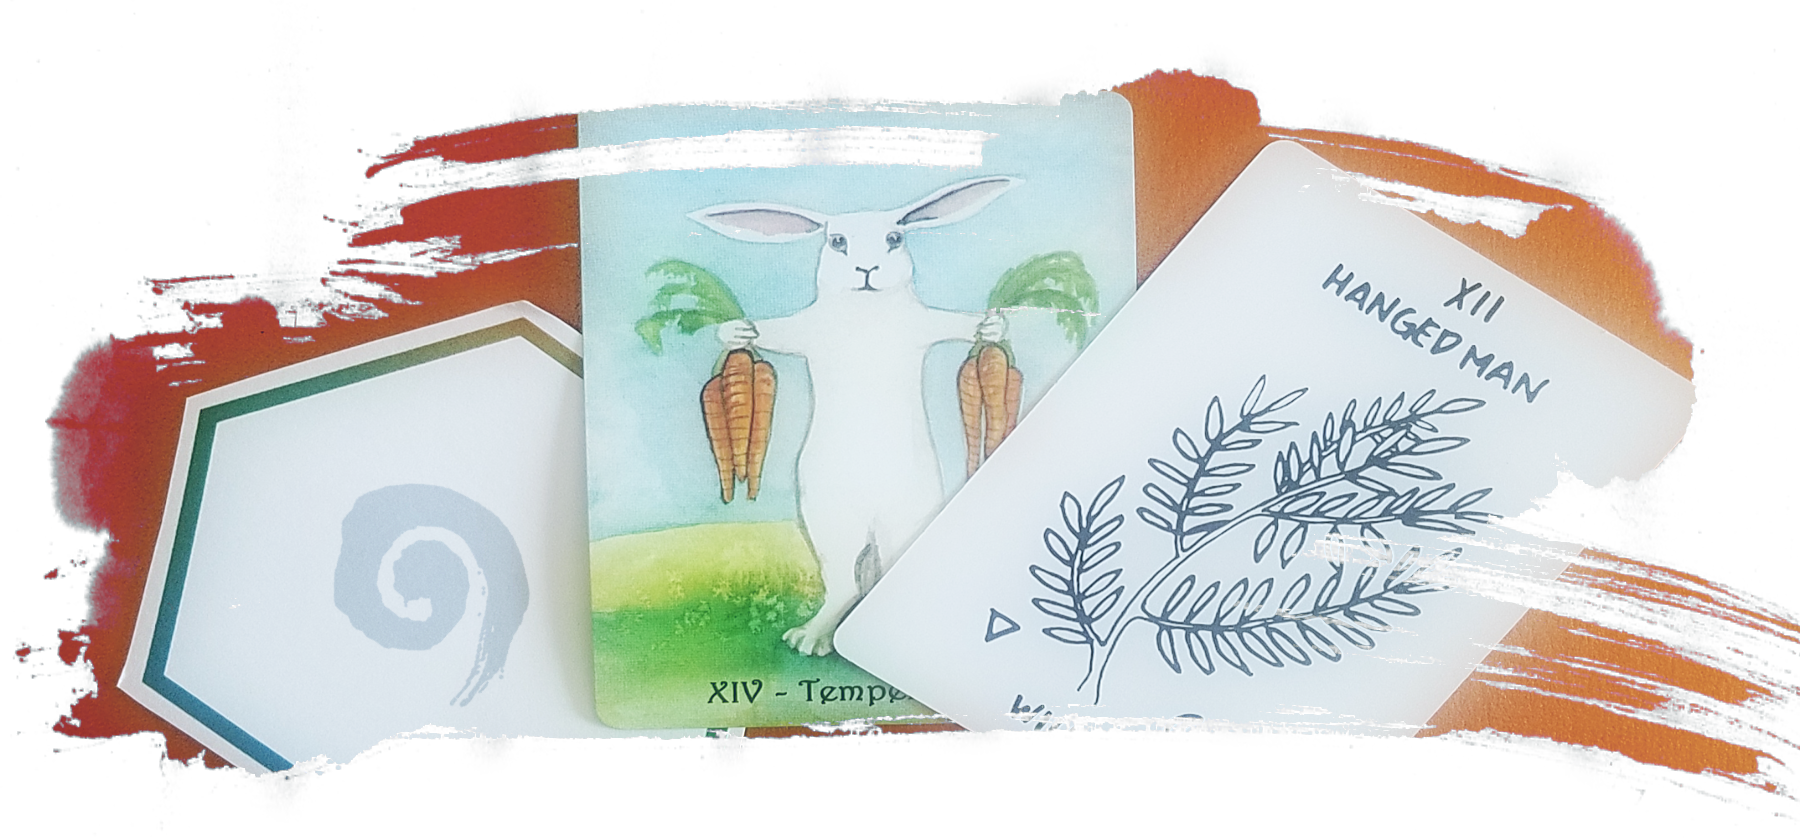 a brushstroke shaped image of three tarot cards on a copper background one is white with black lettering that says the hanged man and has a black outline of a willow branch on it and another is a white hexagon with a teal border and a light grey spiral in the middle and the third is a water color image of a bunny holding three carrots in each outstretched arm with black lettering that says temperance